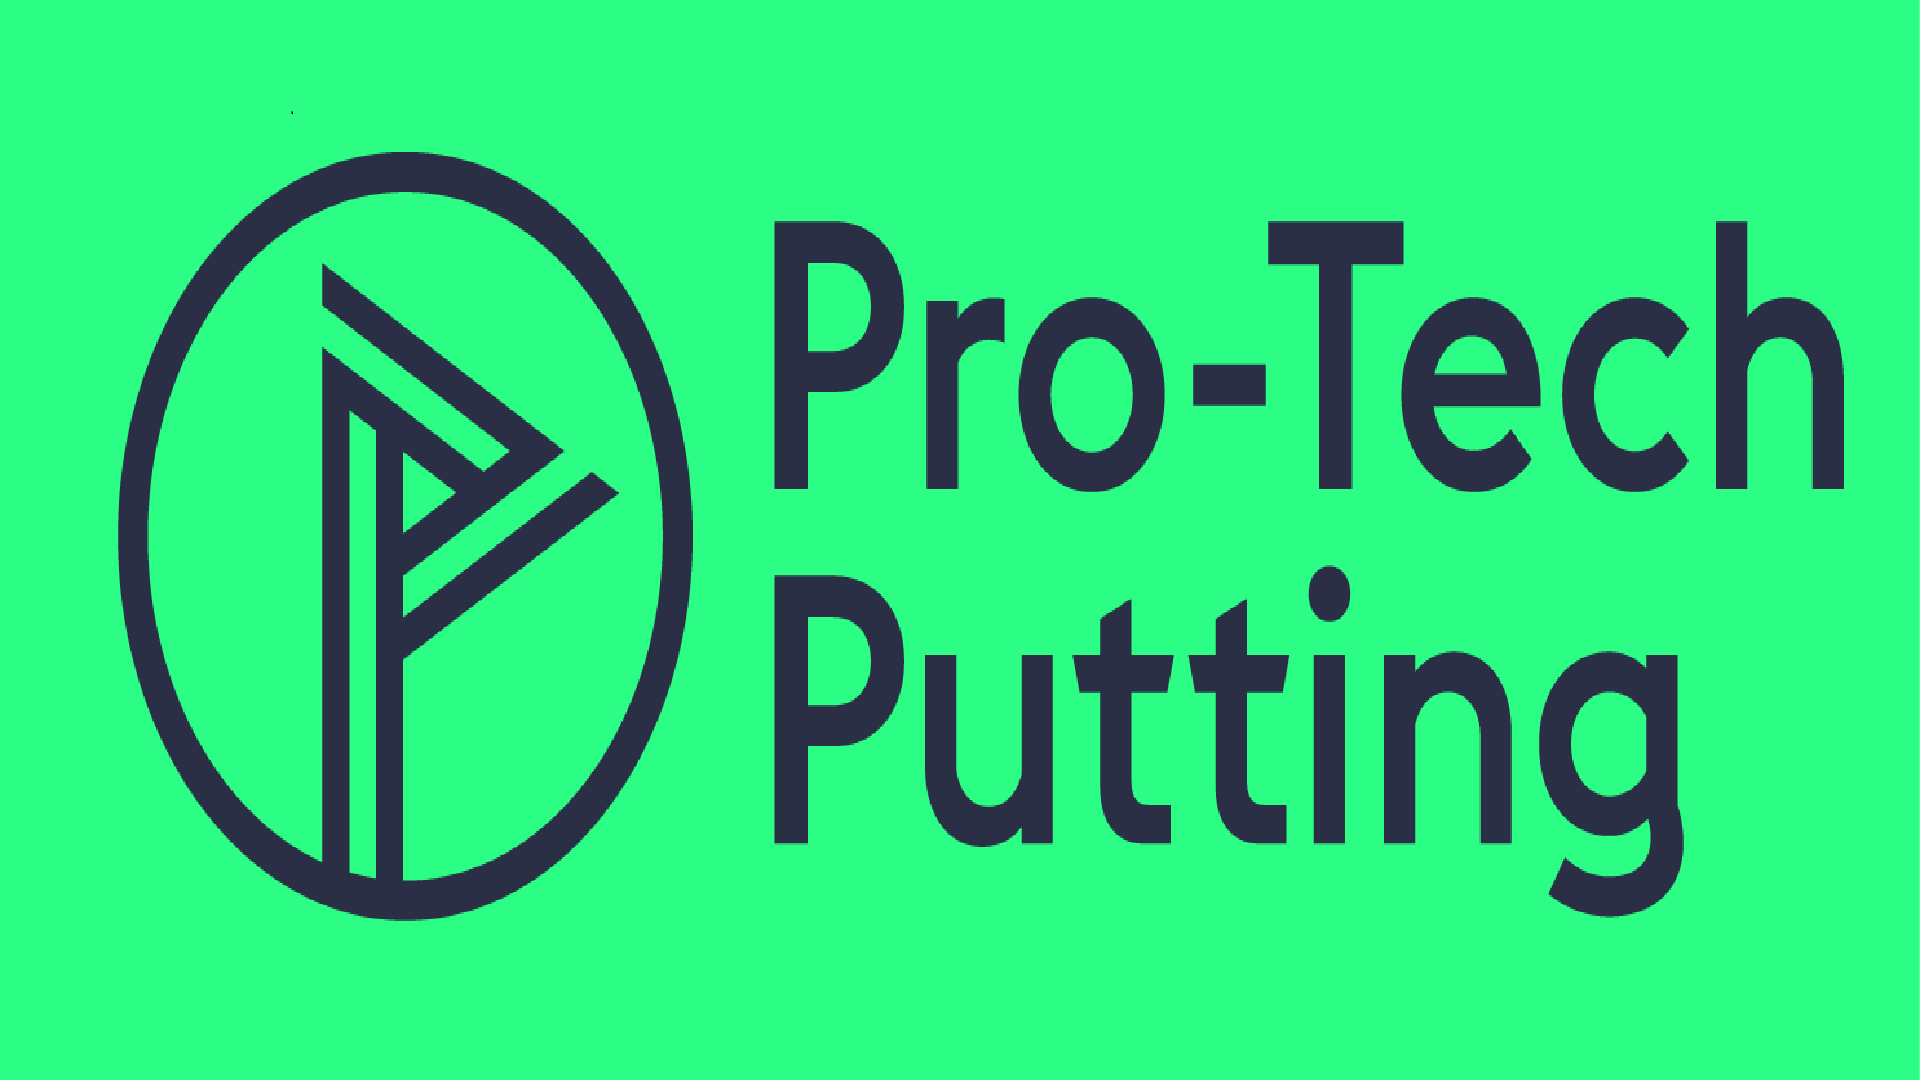 Pro-Tech Putting